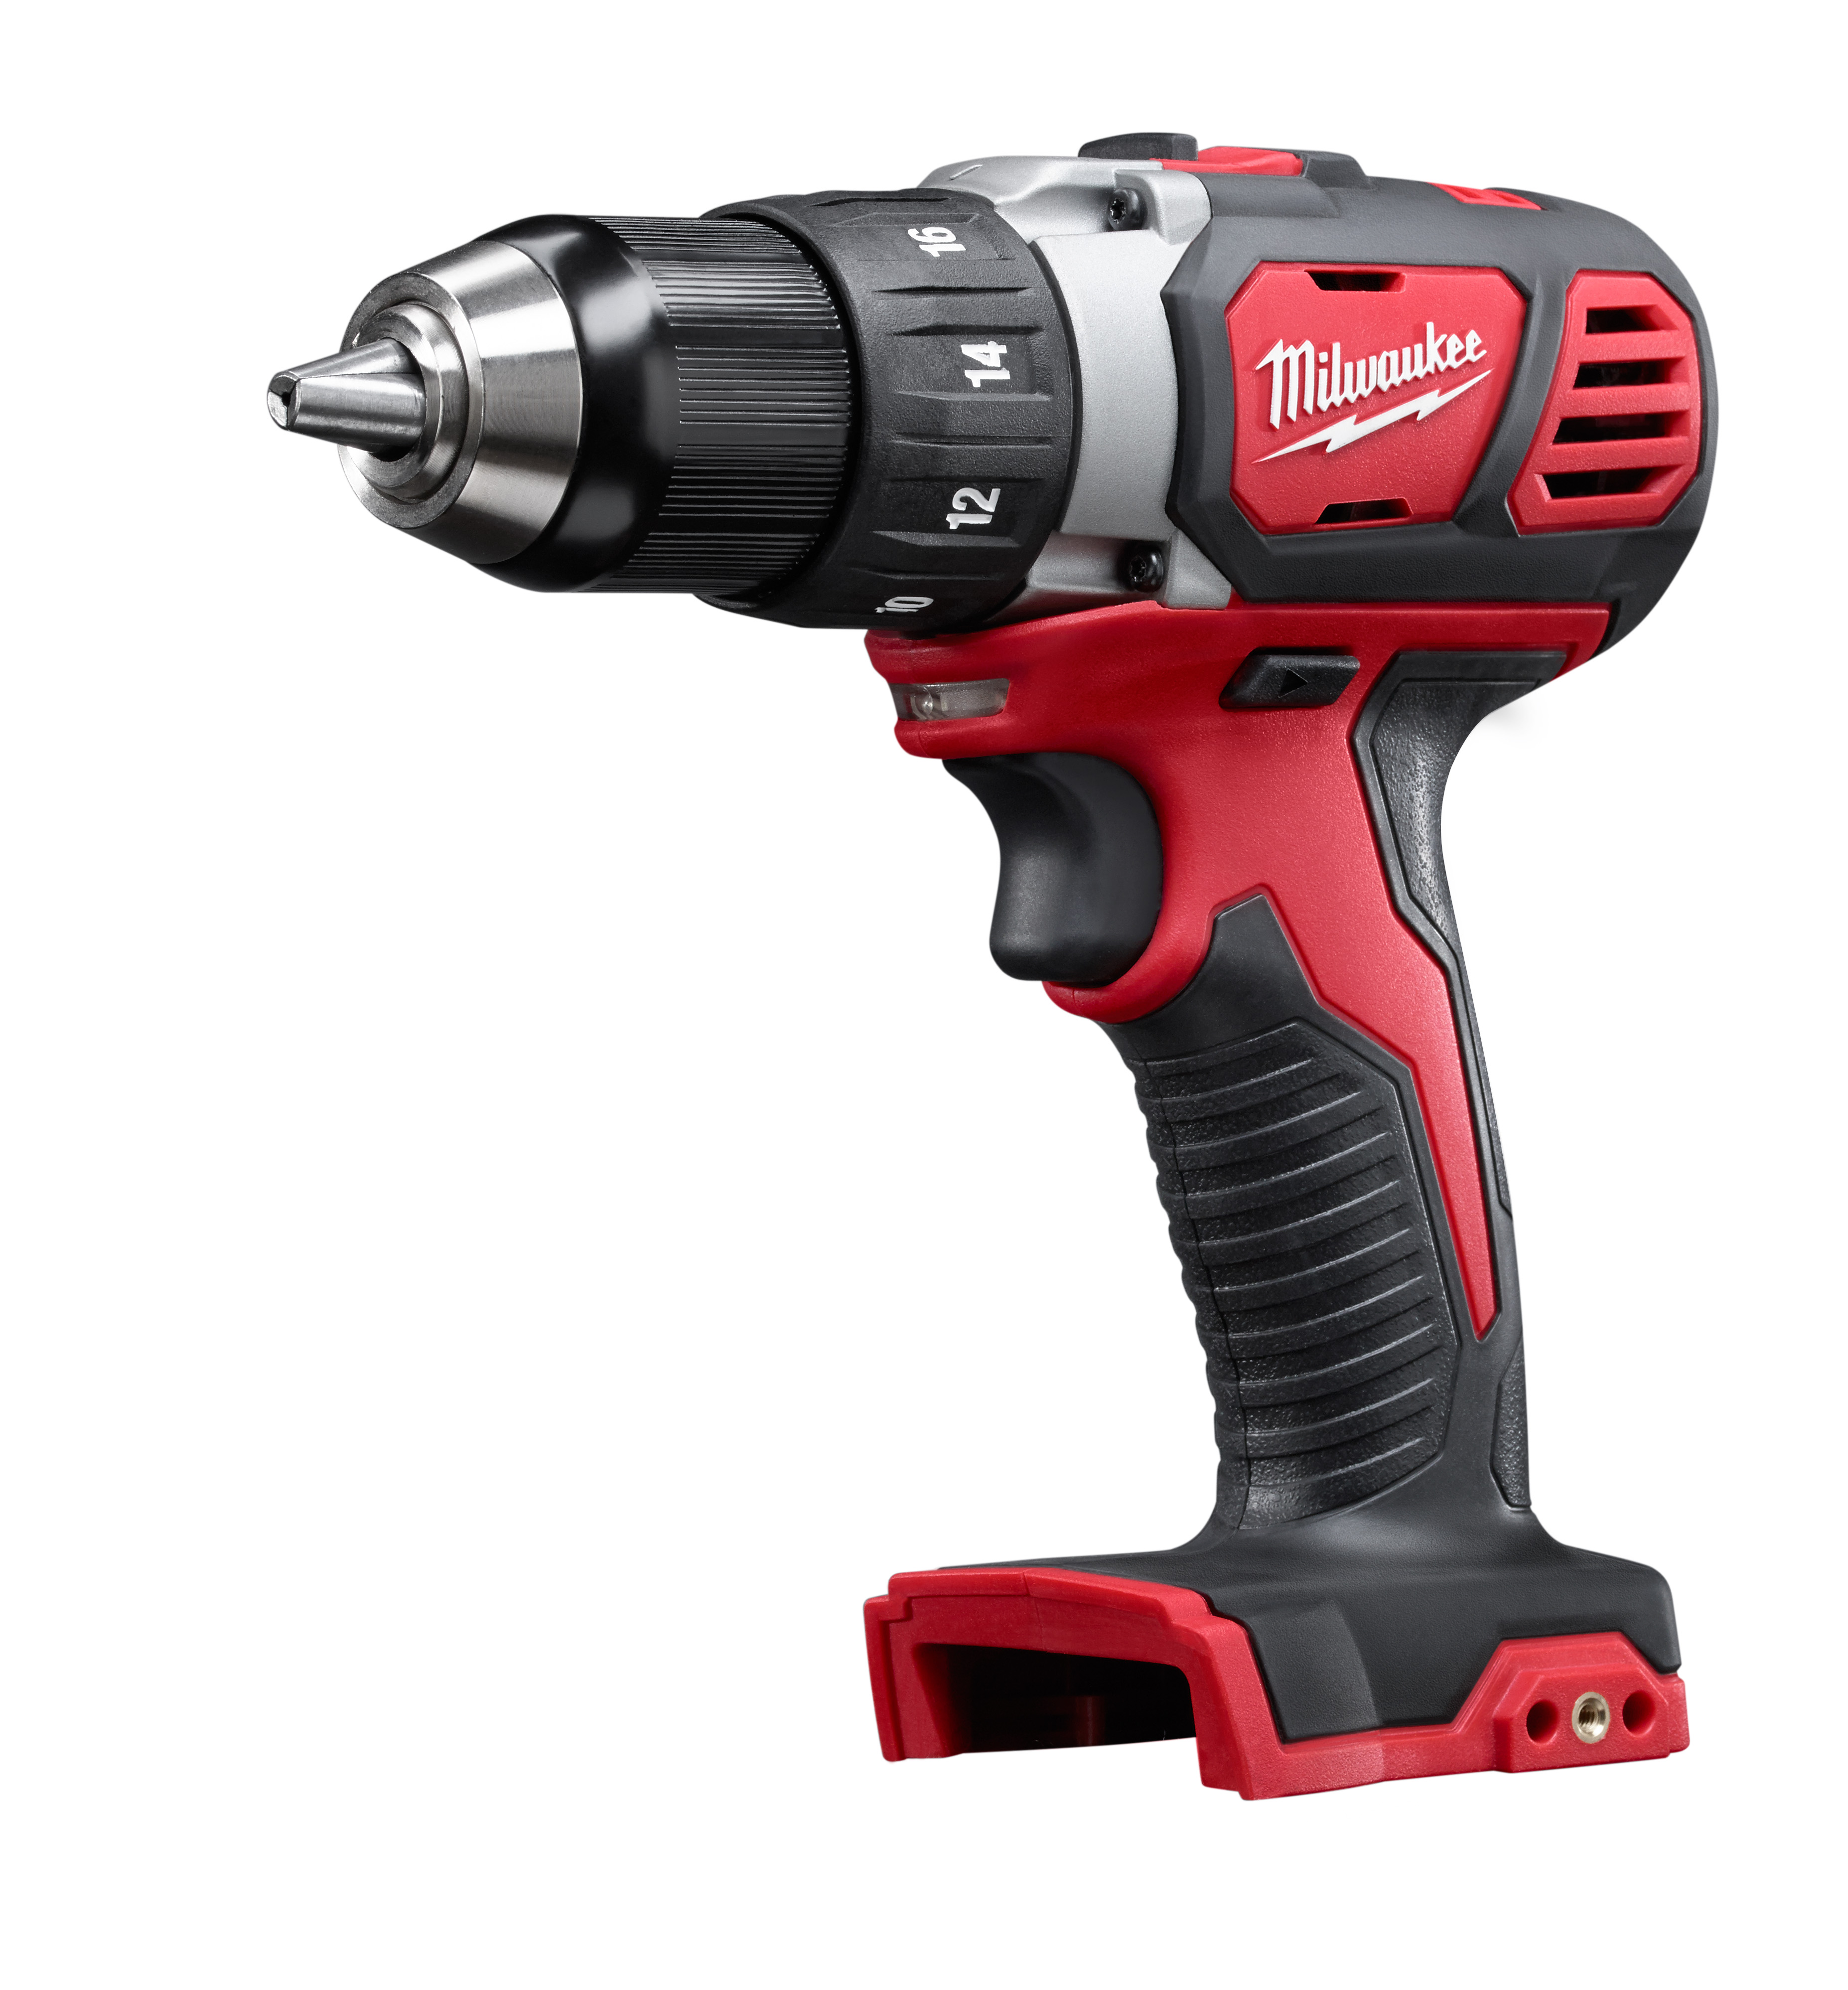 Milwaukee® M18™ 2606-20 Cordless Drill/Driver, 1/2 in Chuck, 18 VDC, 0 to 400 rpm, 0 to 1800 rpm No-Load, 7-1/4 in OAL, Lithium-Ion Battery